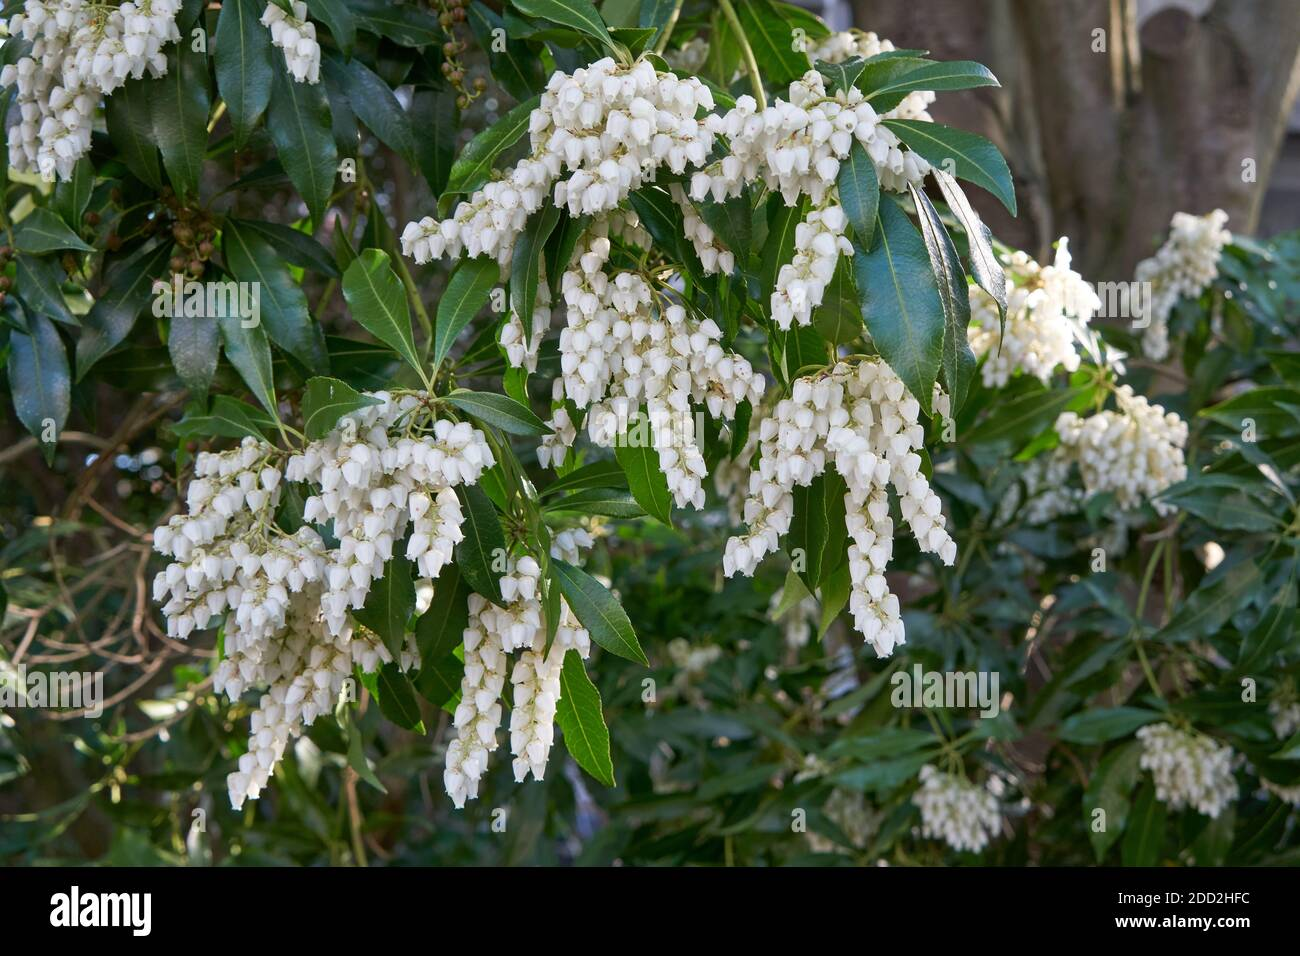 closeup-of-a-white-flowering-shrub-in-sp